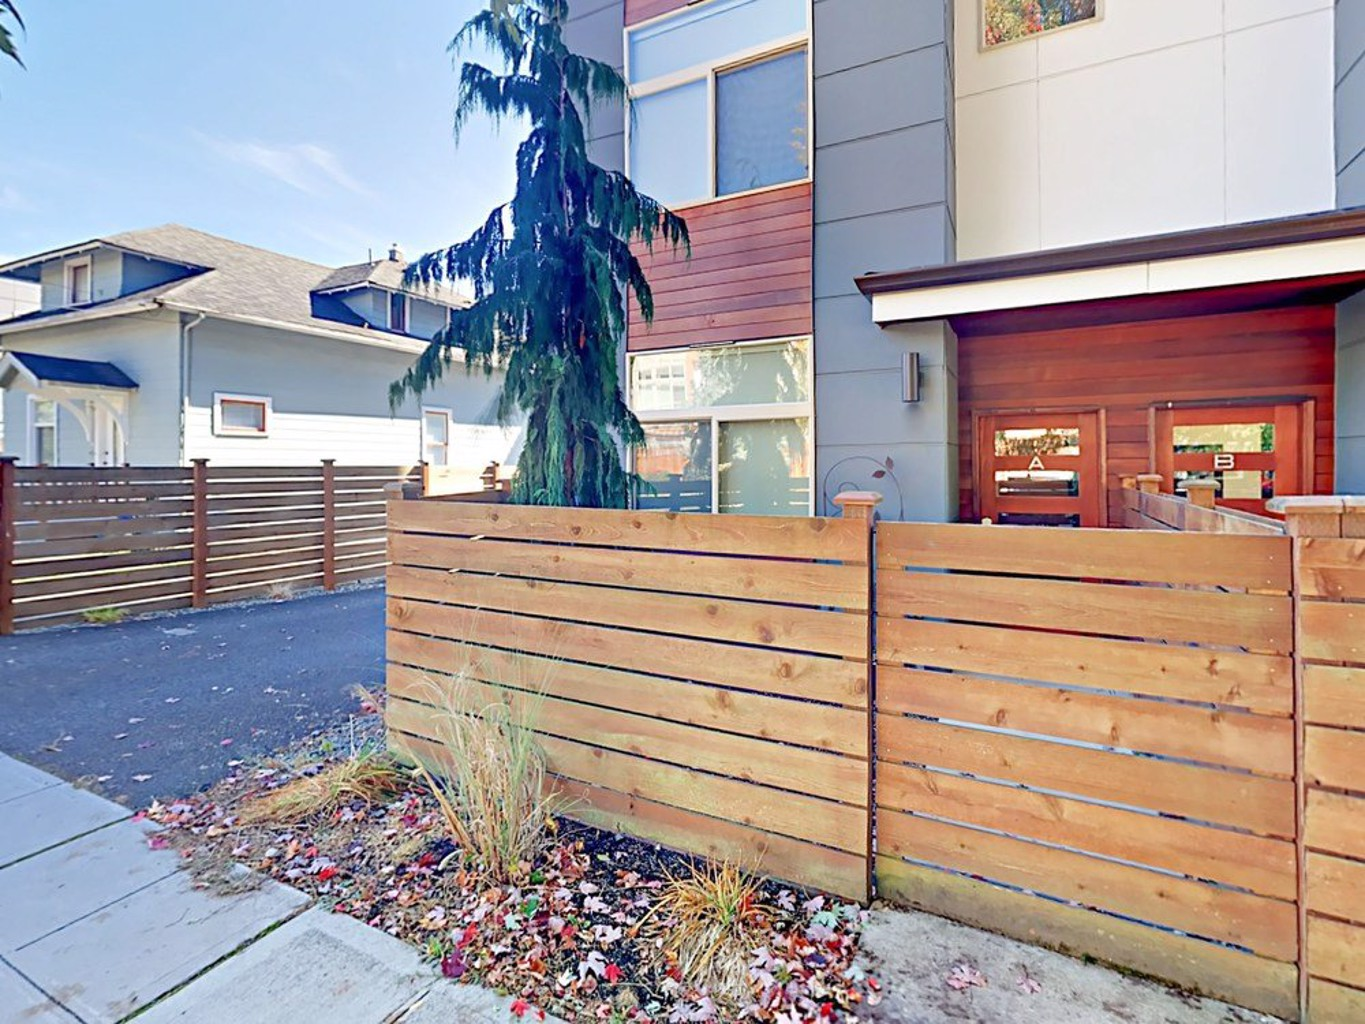 2br W Rooftop Deck In Highly Walkable Locale 2 Bedroom Townhouse